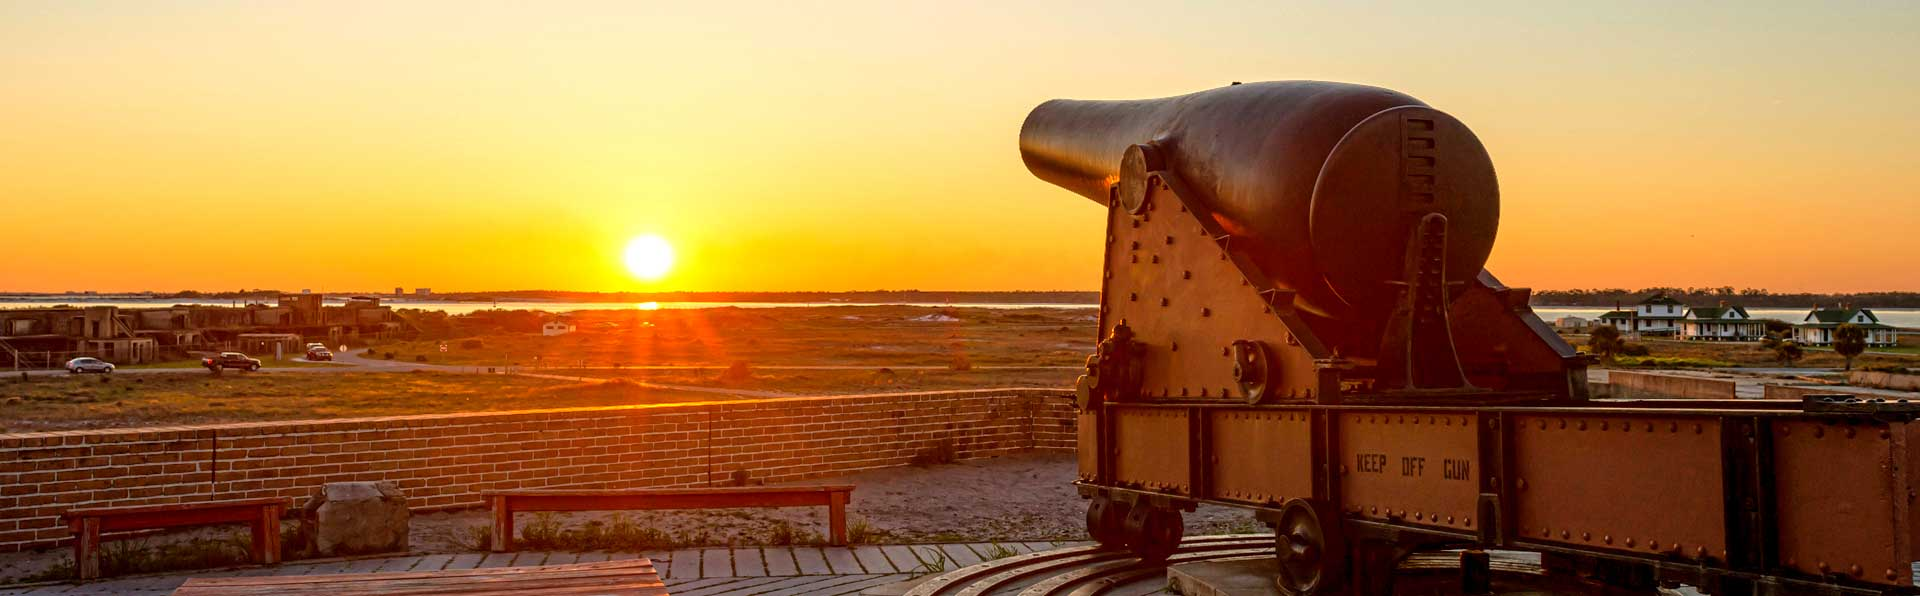 Pensacola Fort Pickens